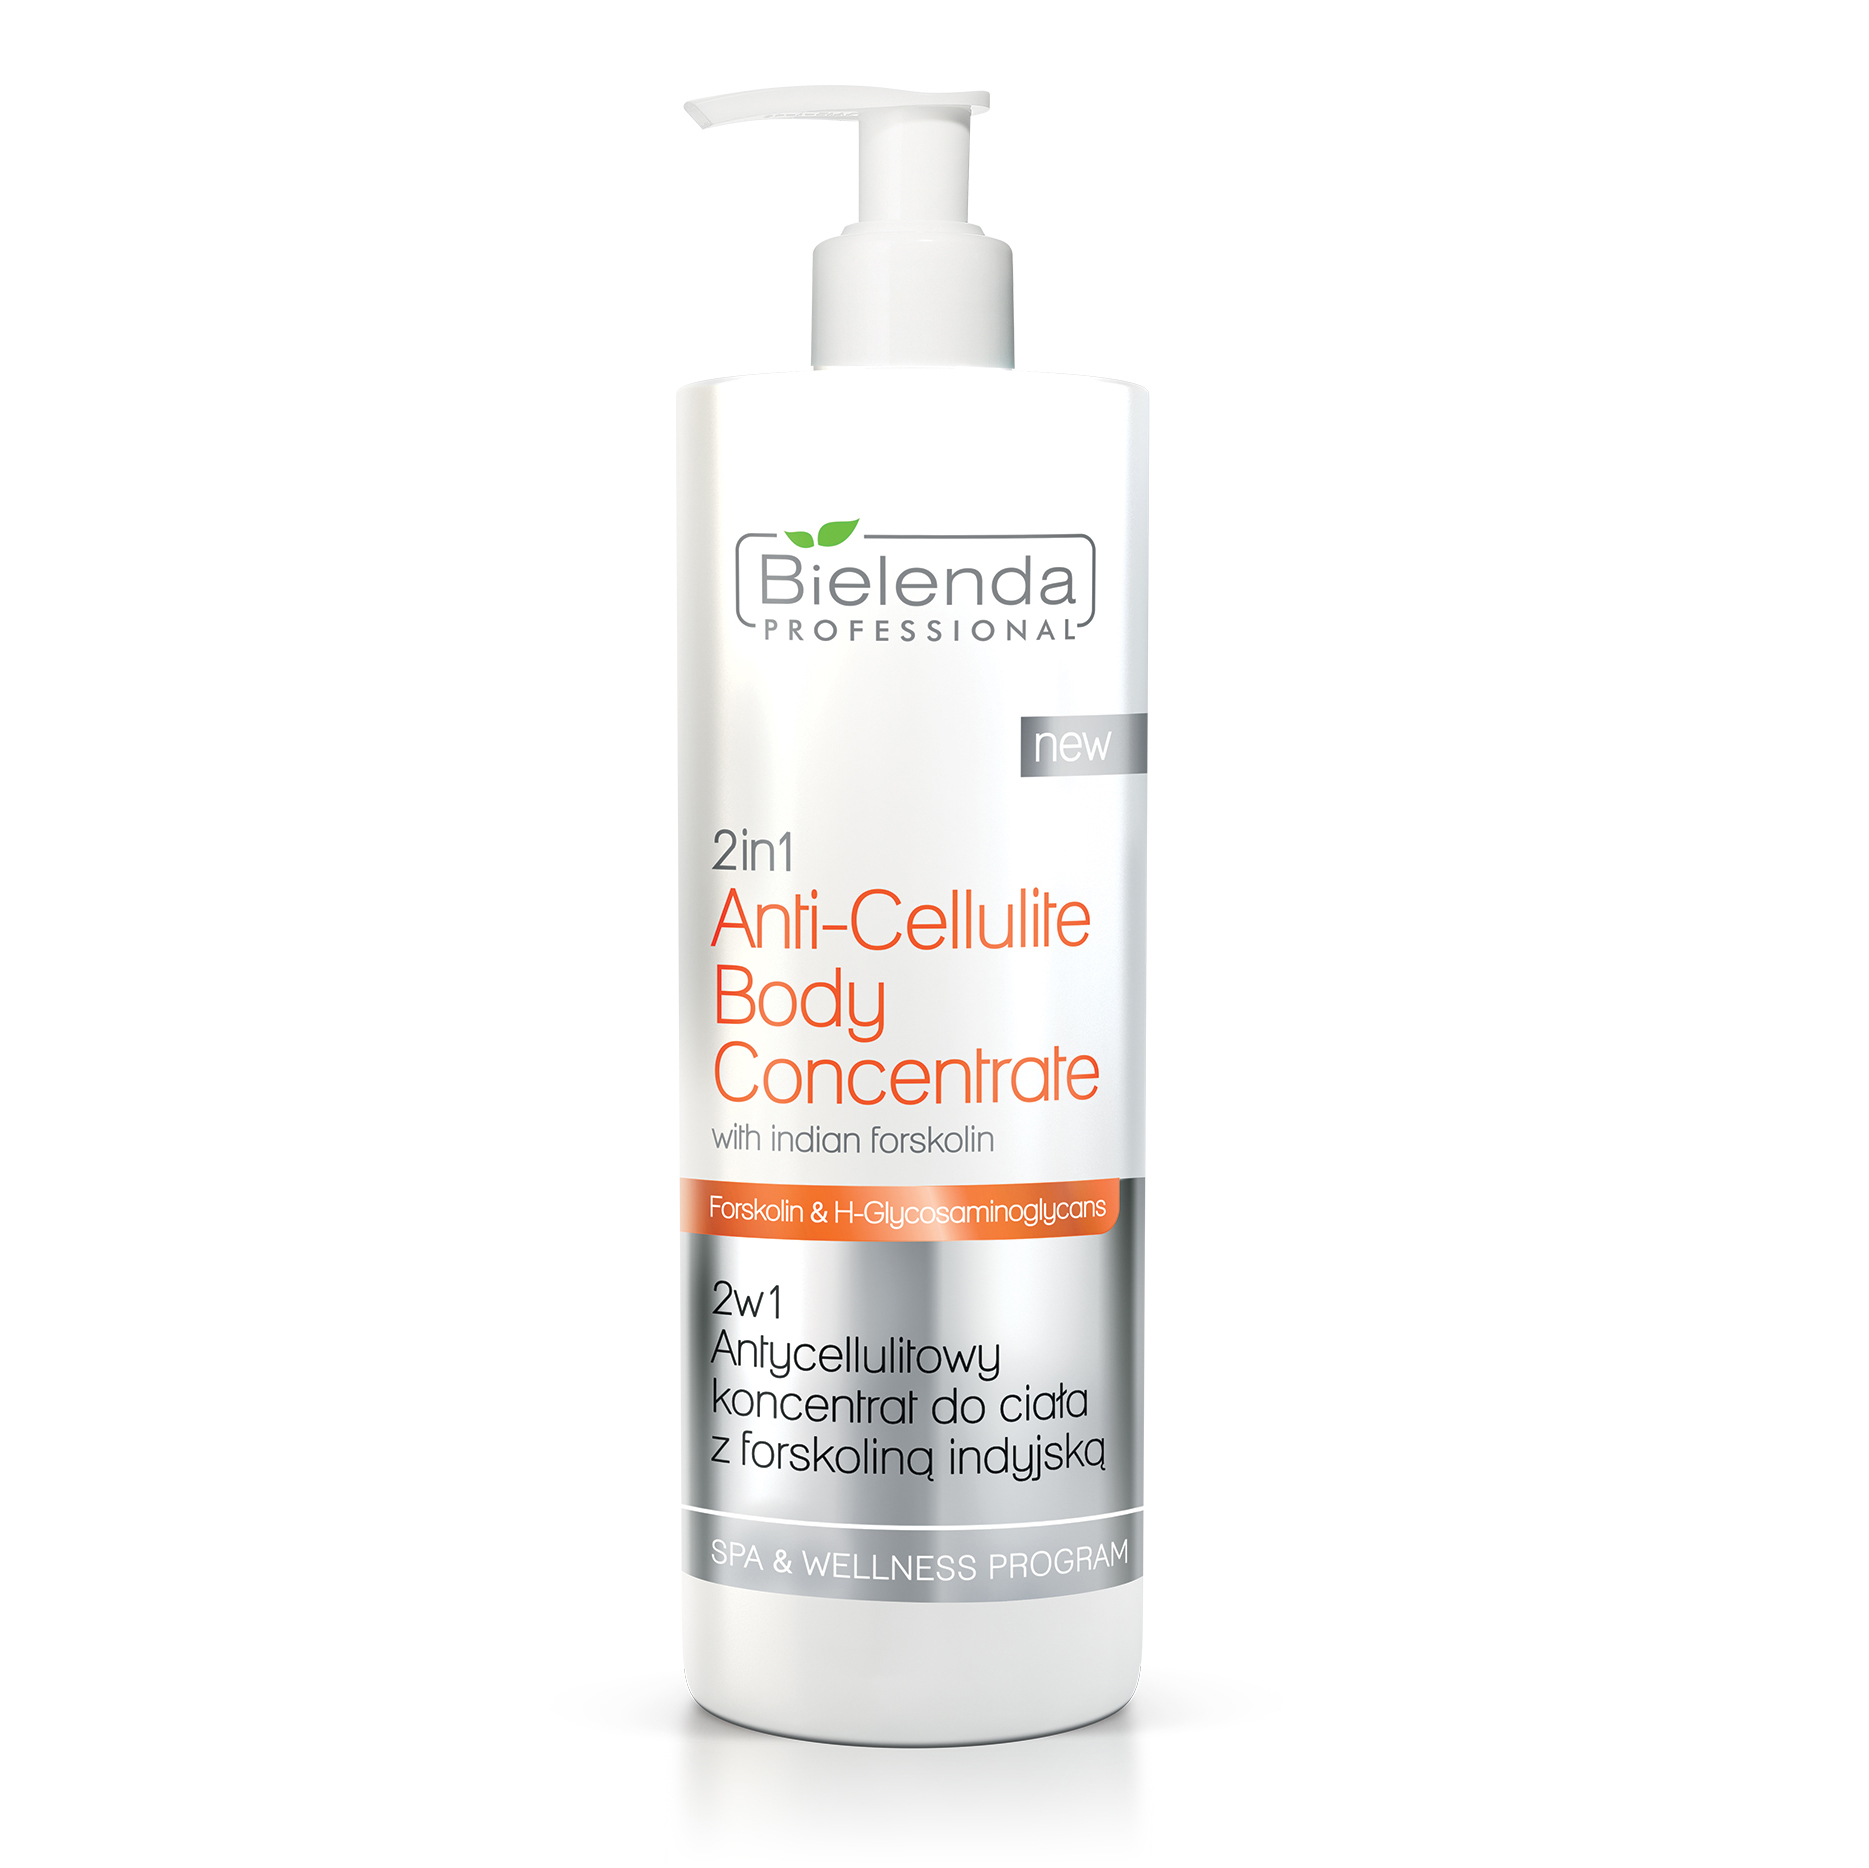 Bielenda professional - 2in1 Anti Cellulite Body Concentrate With Indian Forskolin